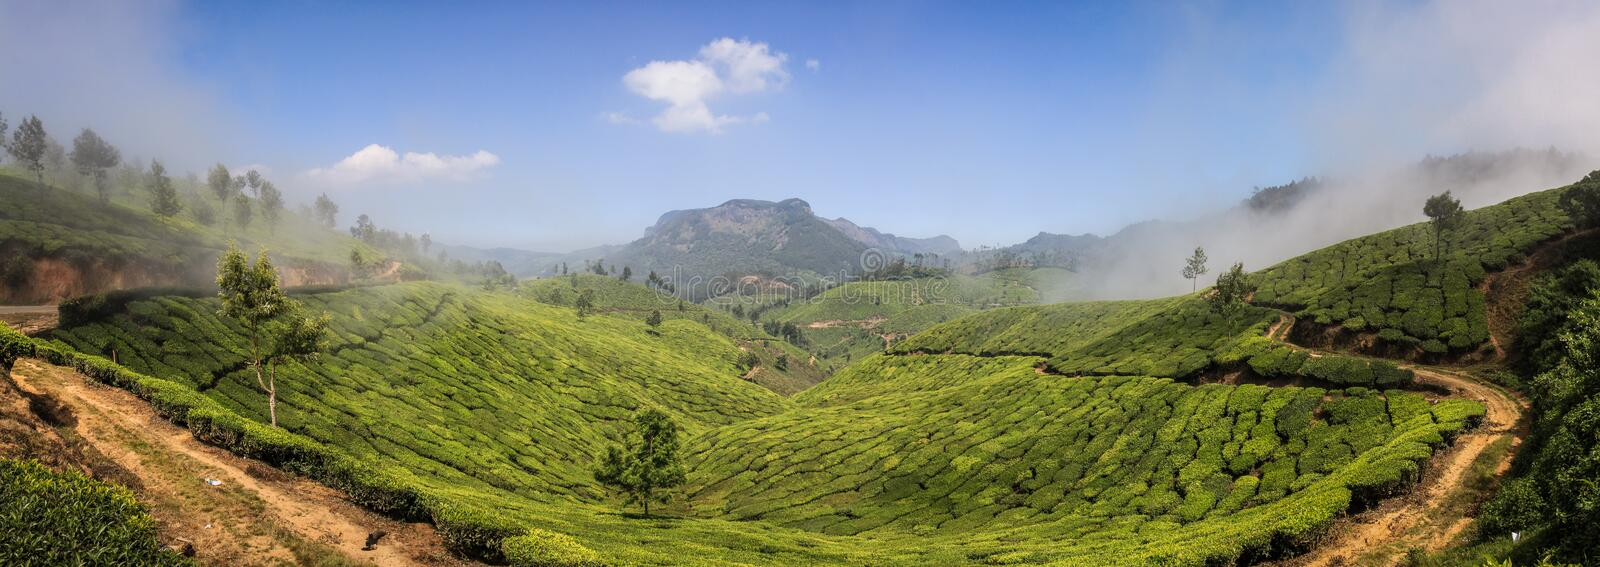 View of the green lush tea hills and mountains around Munnar, Kerala, India. Munnar is a town and hill station located in the Idukki district of the southwestern stock photo